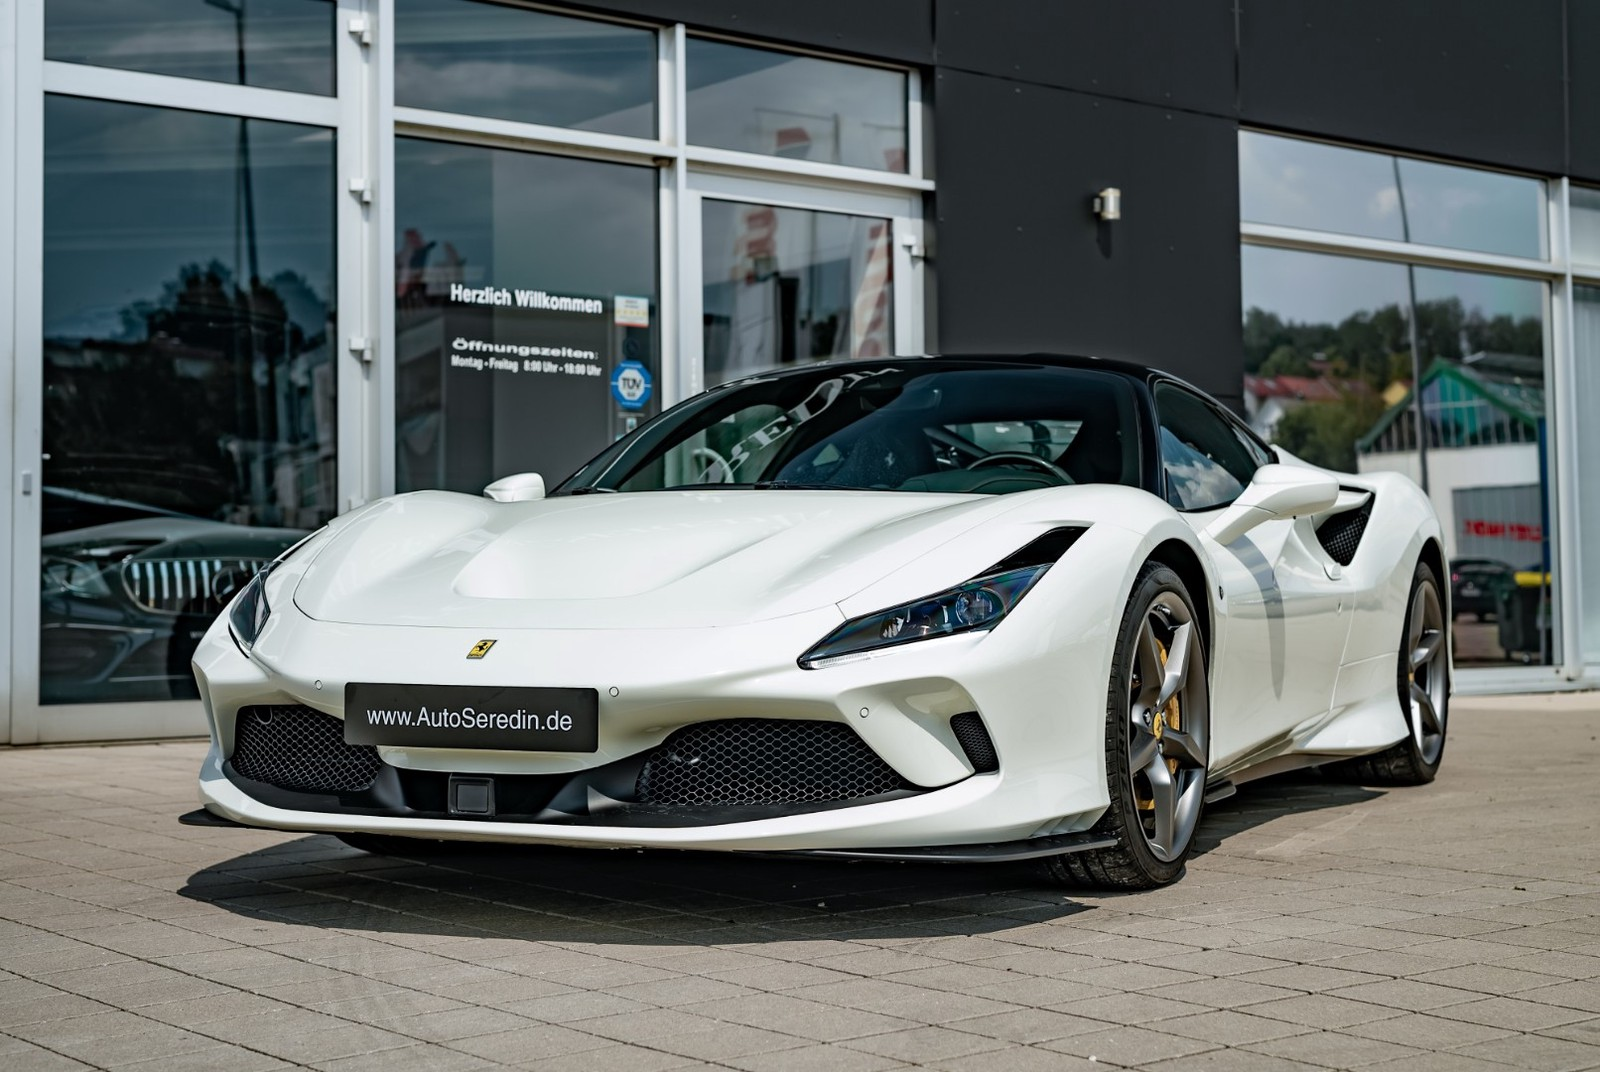 Ferrari F8 Tributo New Buy In Hechingen Bei Stuttgart Price 303920 Eur Int Nr 20 55 Sold